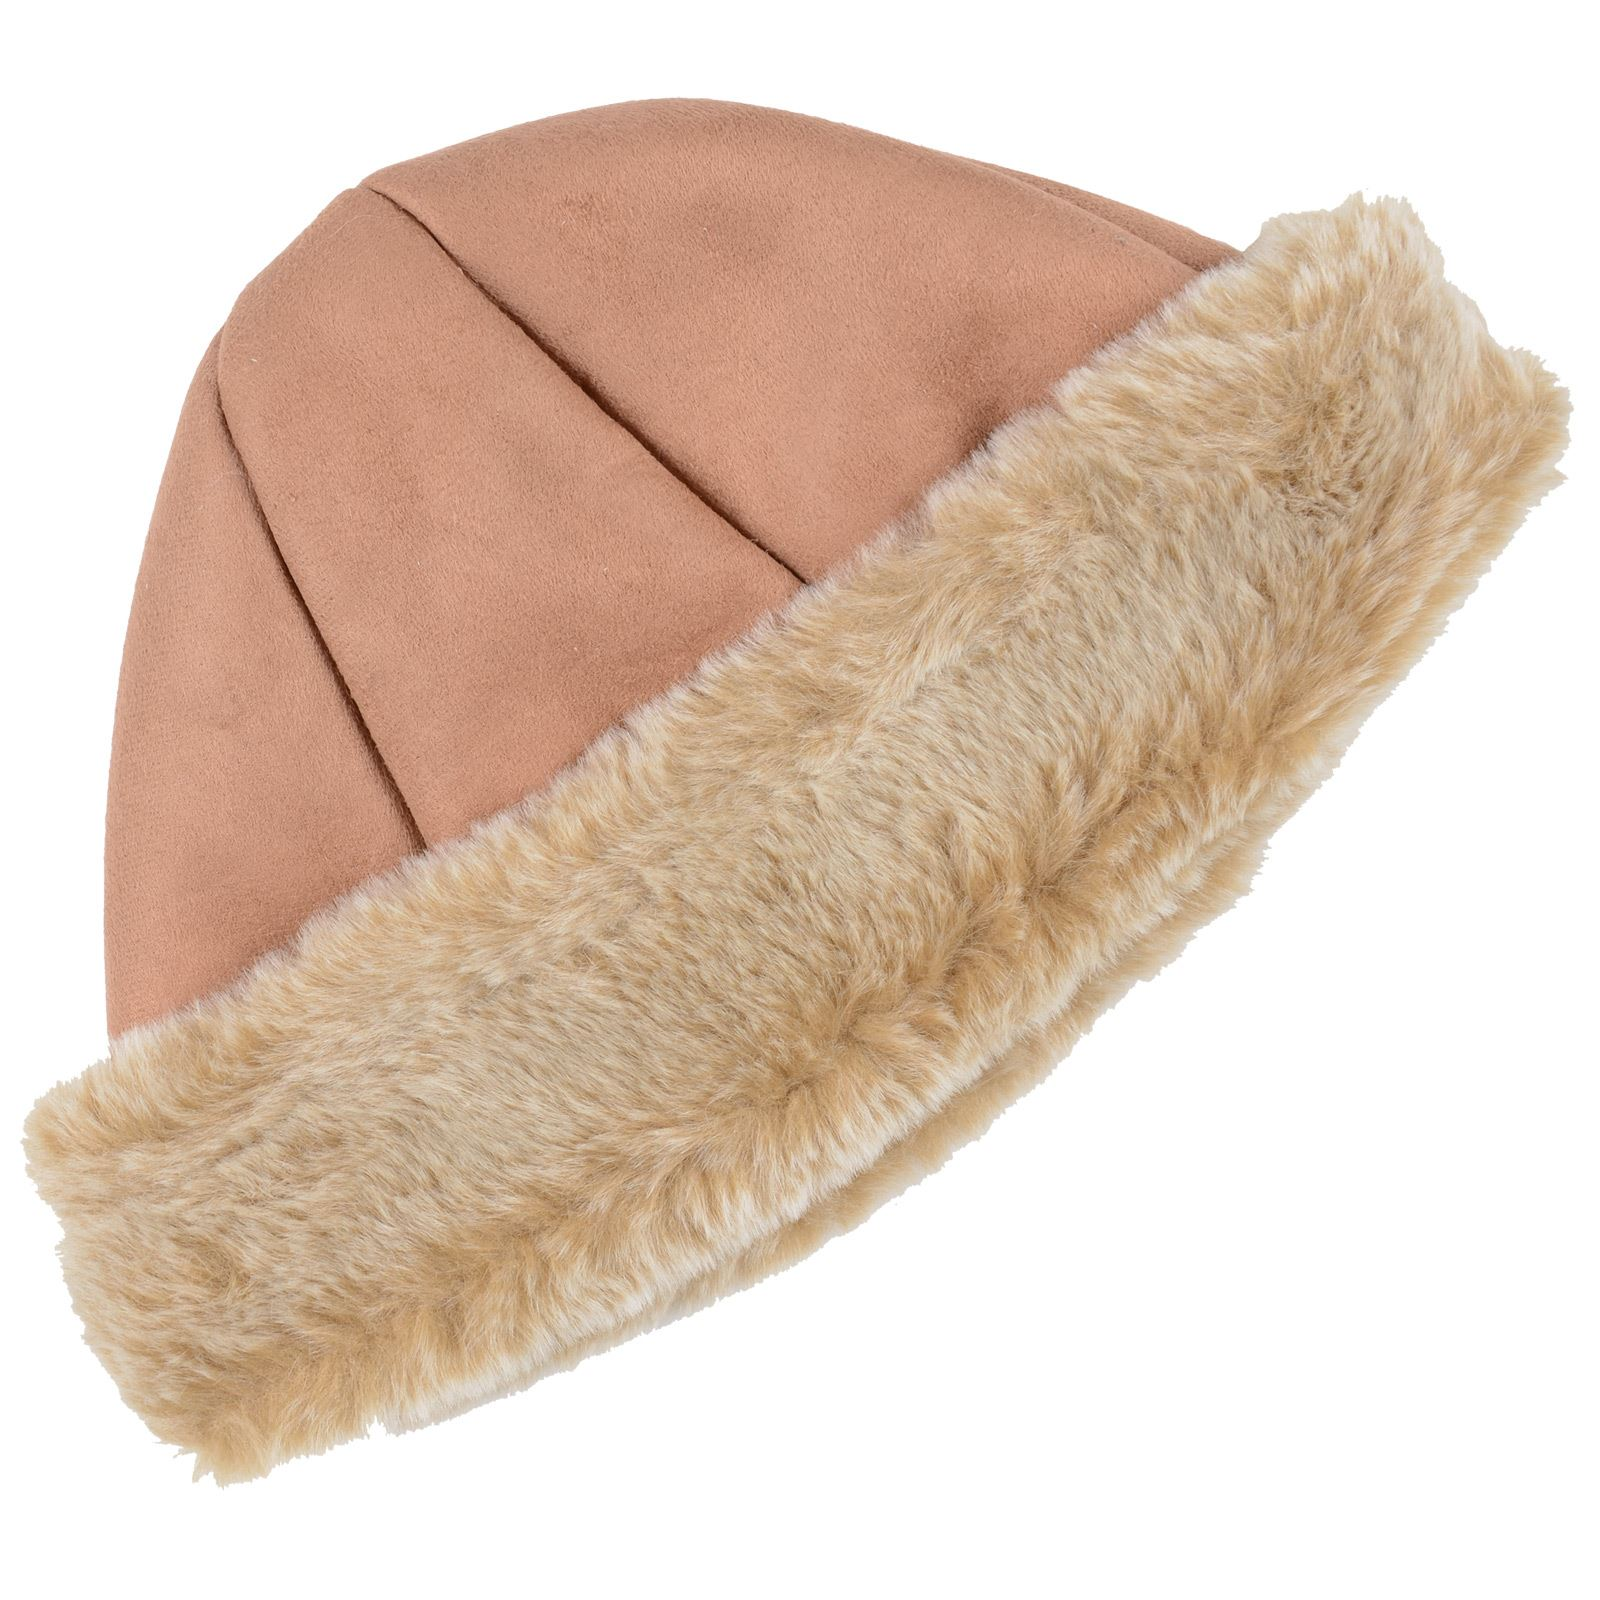 5ffaf9593e668 Details about New Pia Rossini Ladies Cossack Hat Faux Sheepskin / Suede &  Fur Camel Or Tan